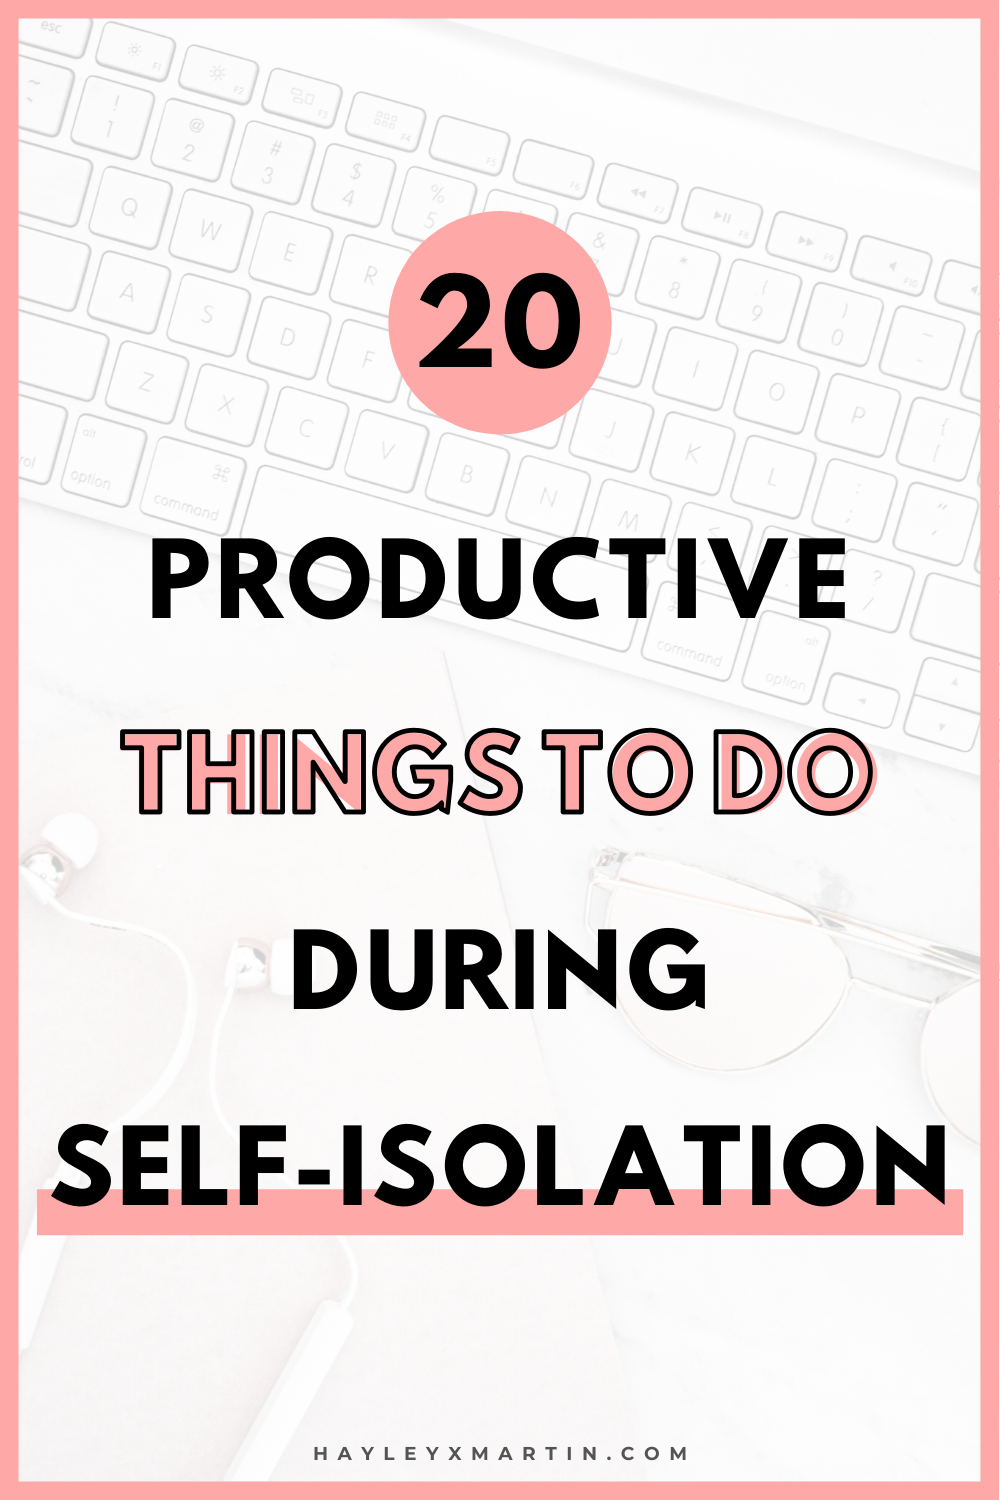 20 PRODUCTIVE THINGS TO DO DURING SELF-ISOLATION | HAYLEYXMARTIN